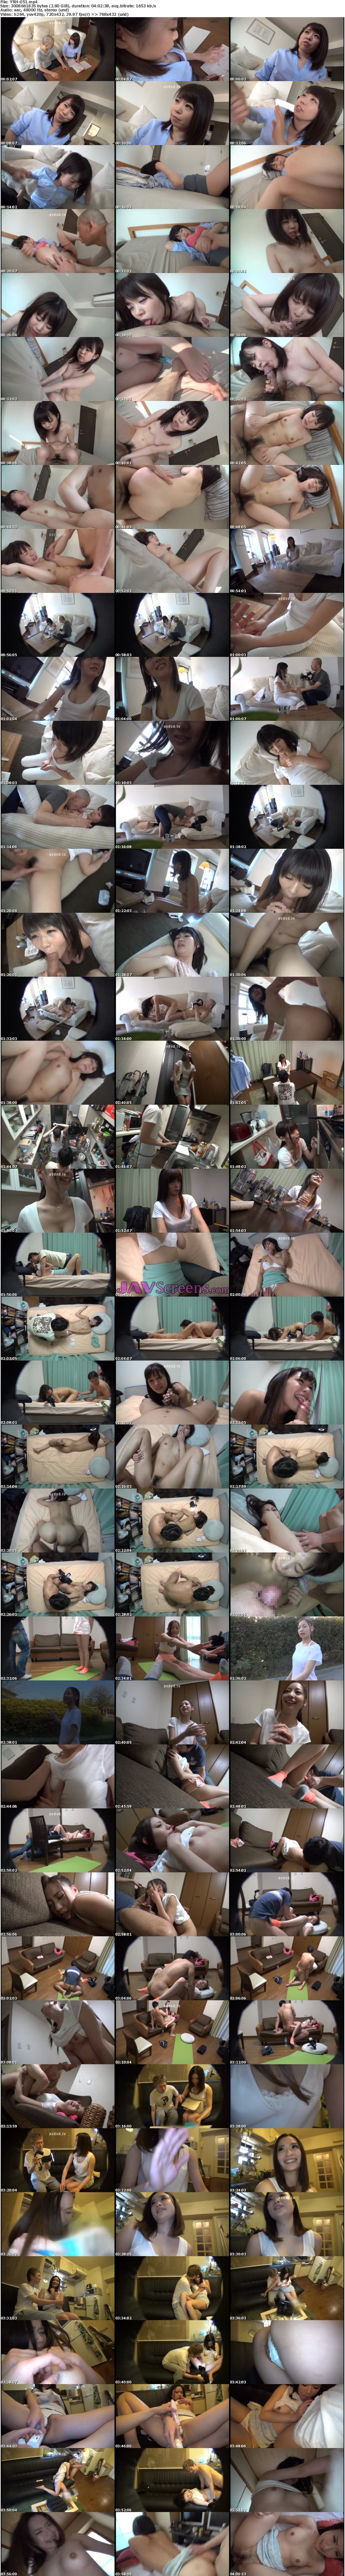 YRH-051.jpg - JAV Screenshot